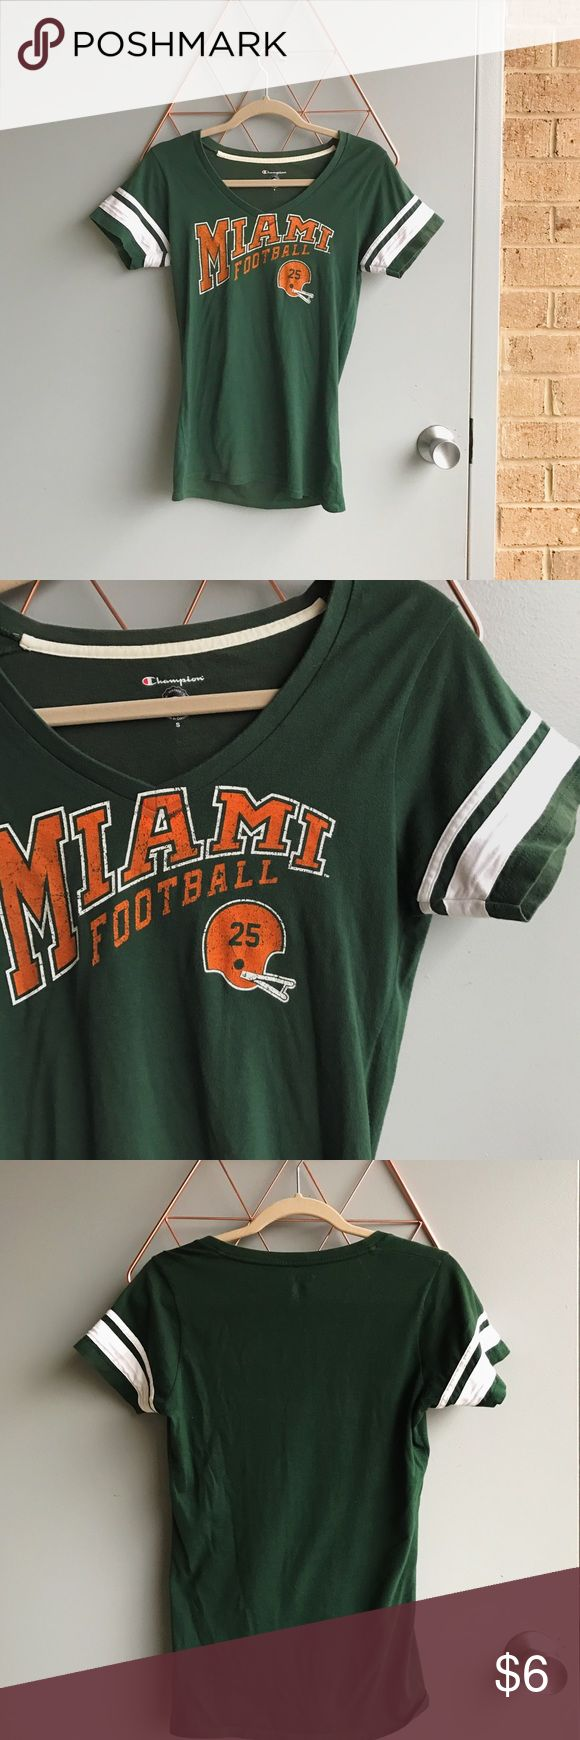 Miami University football tee Green U tee. Size S worn a few times. Champion Tops Tees - Short Sleeve